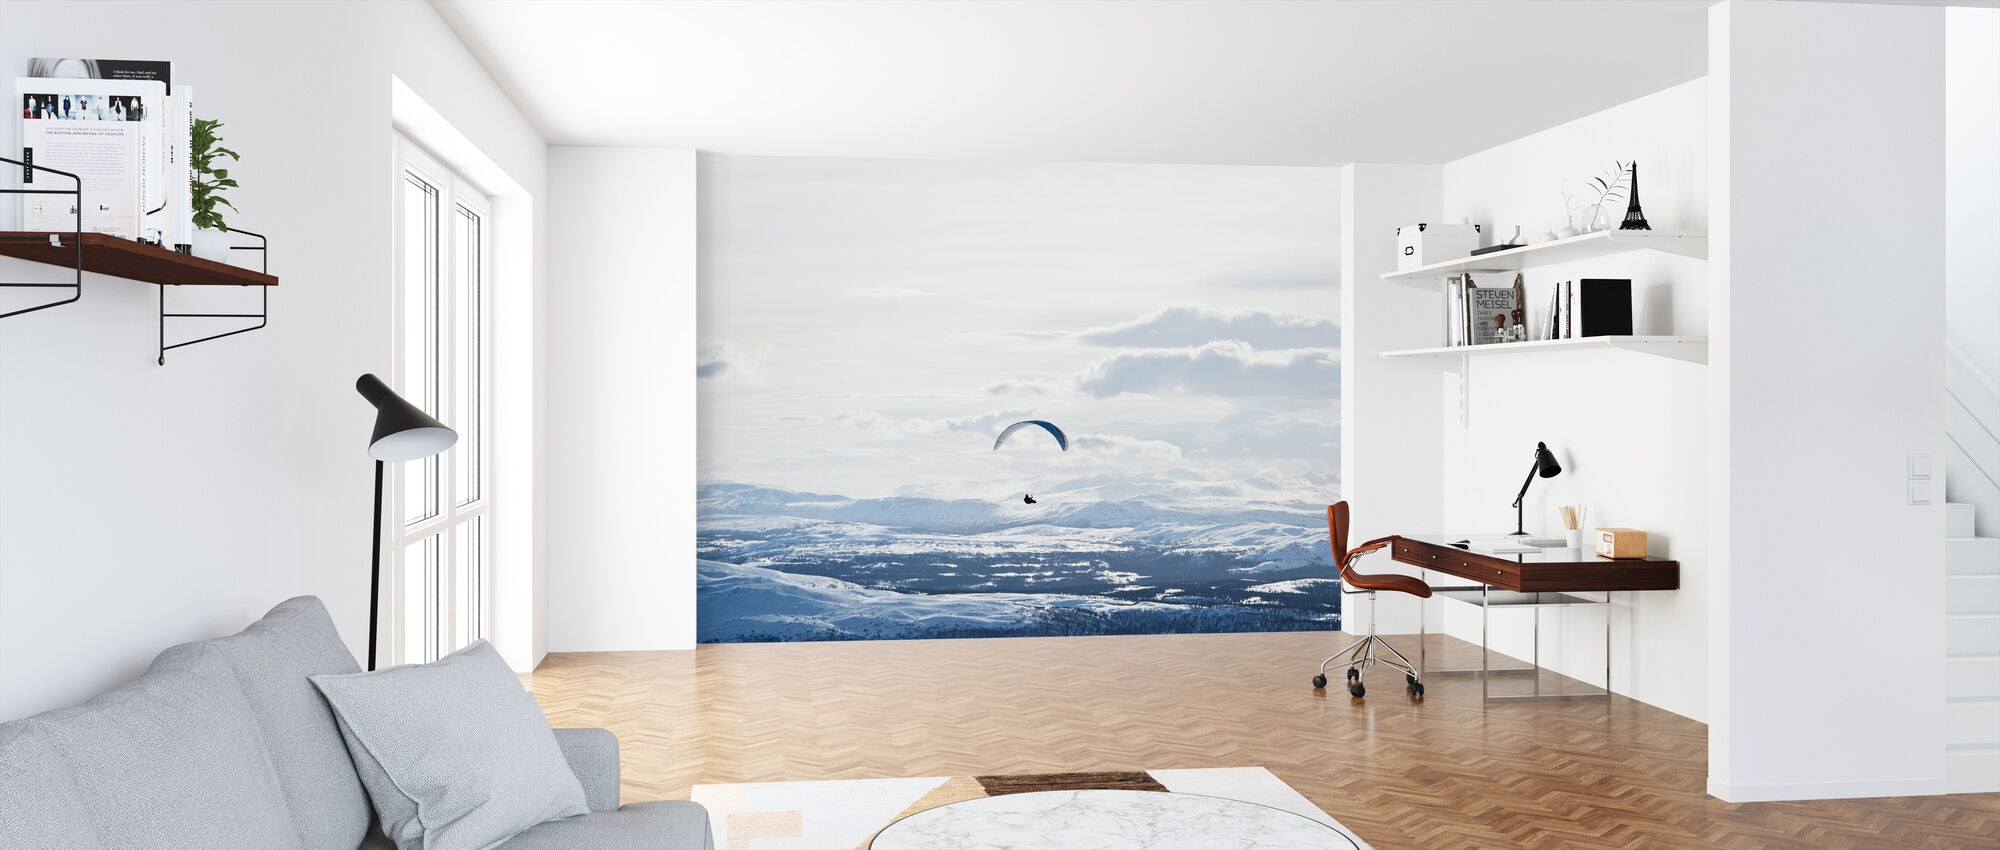 Parachuting in Åre, Sweden - Papel pintado - Oficina